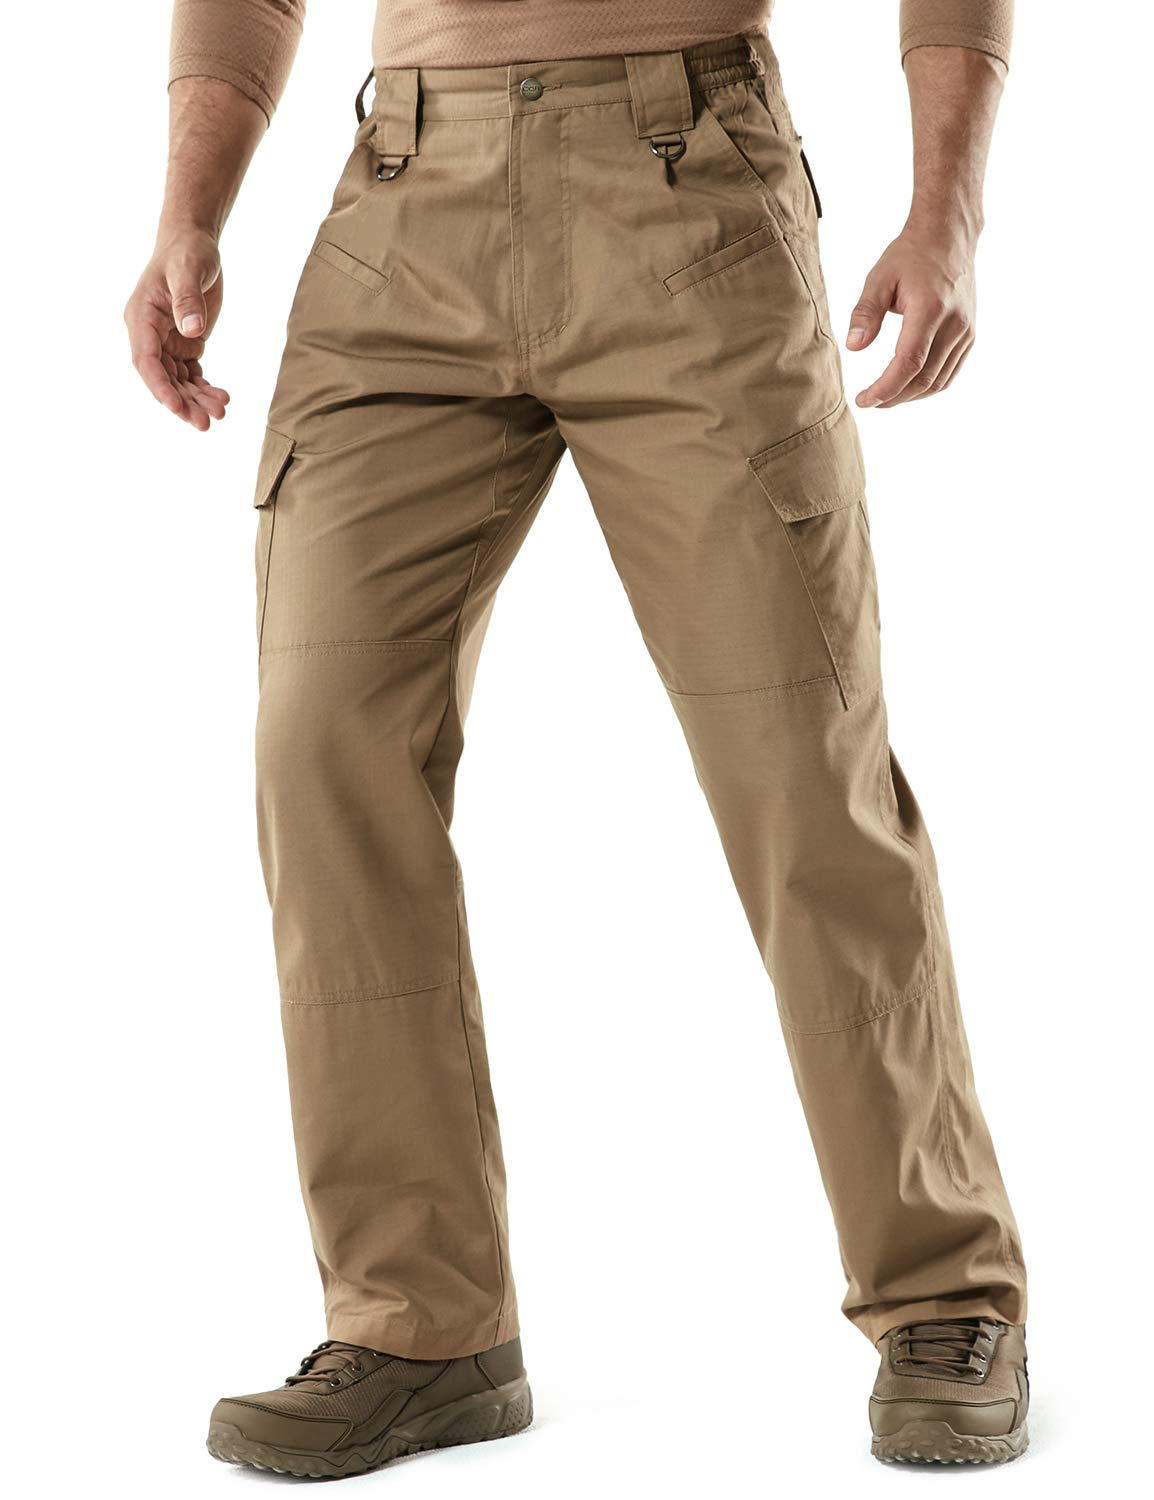 CQR Men's Tactical Pants Lightweight EDC Assault Cargo, Duratex(tlp106) - Coyote, 42W/30L by CQR